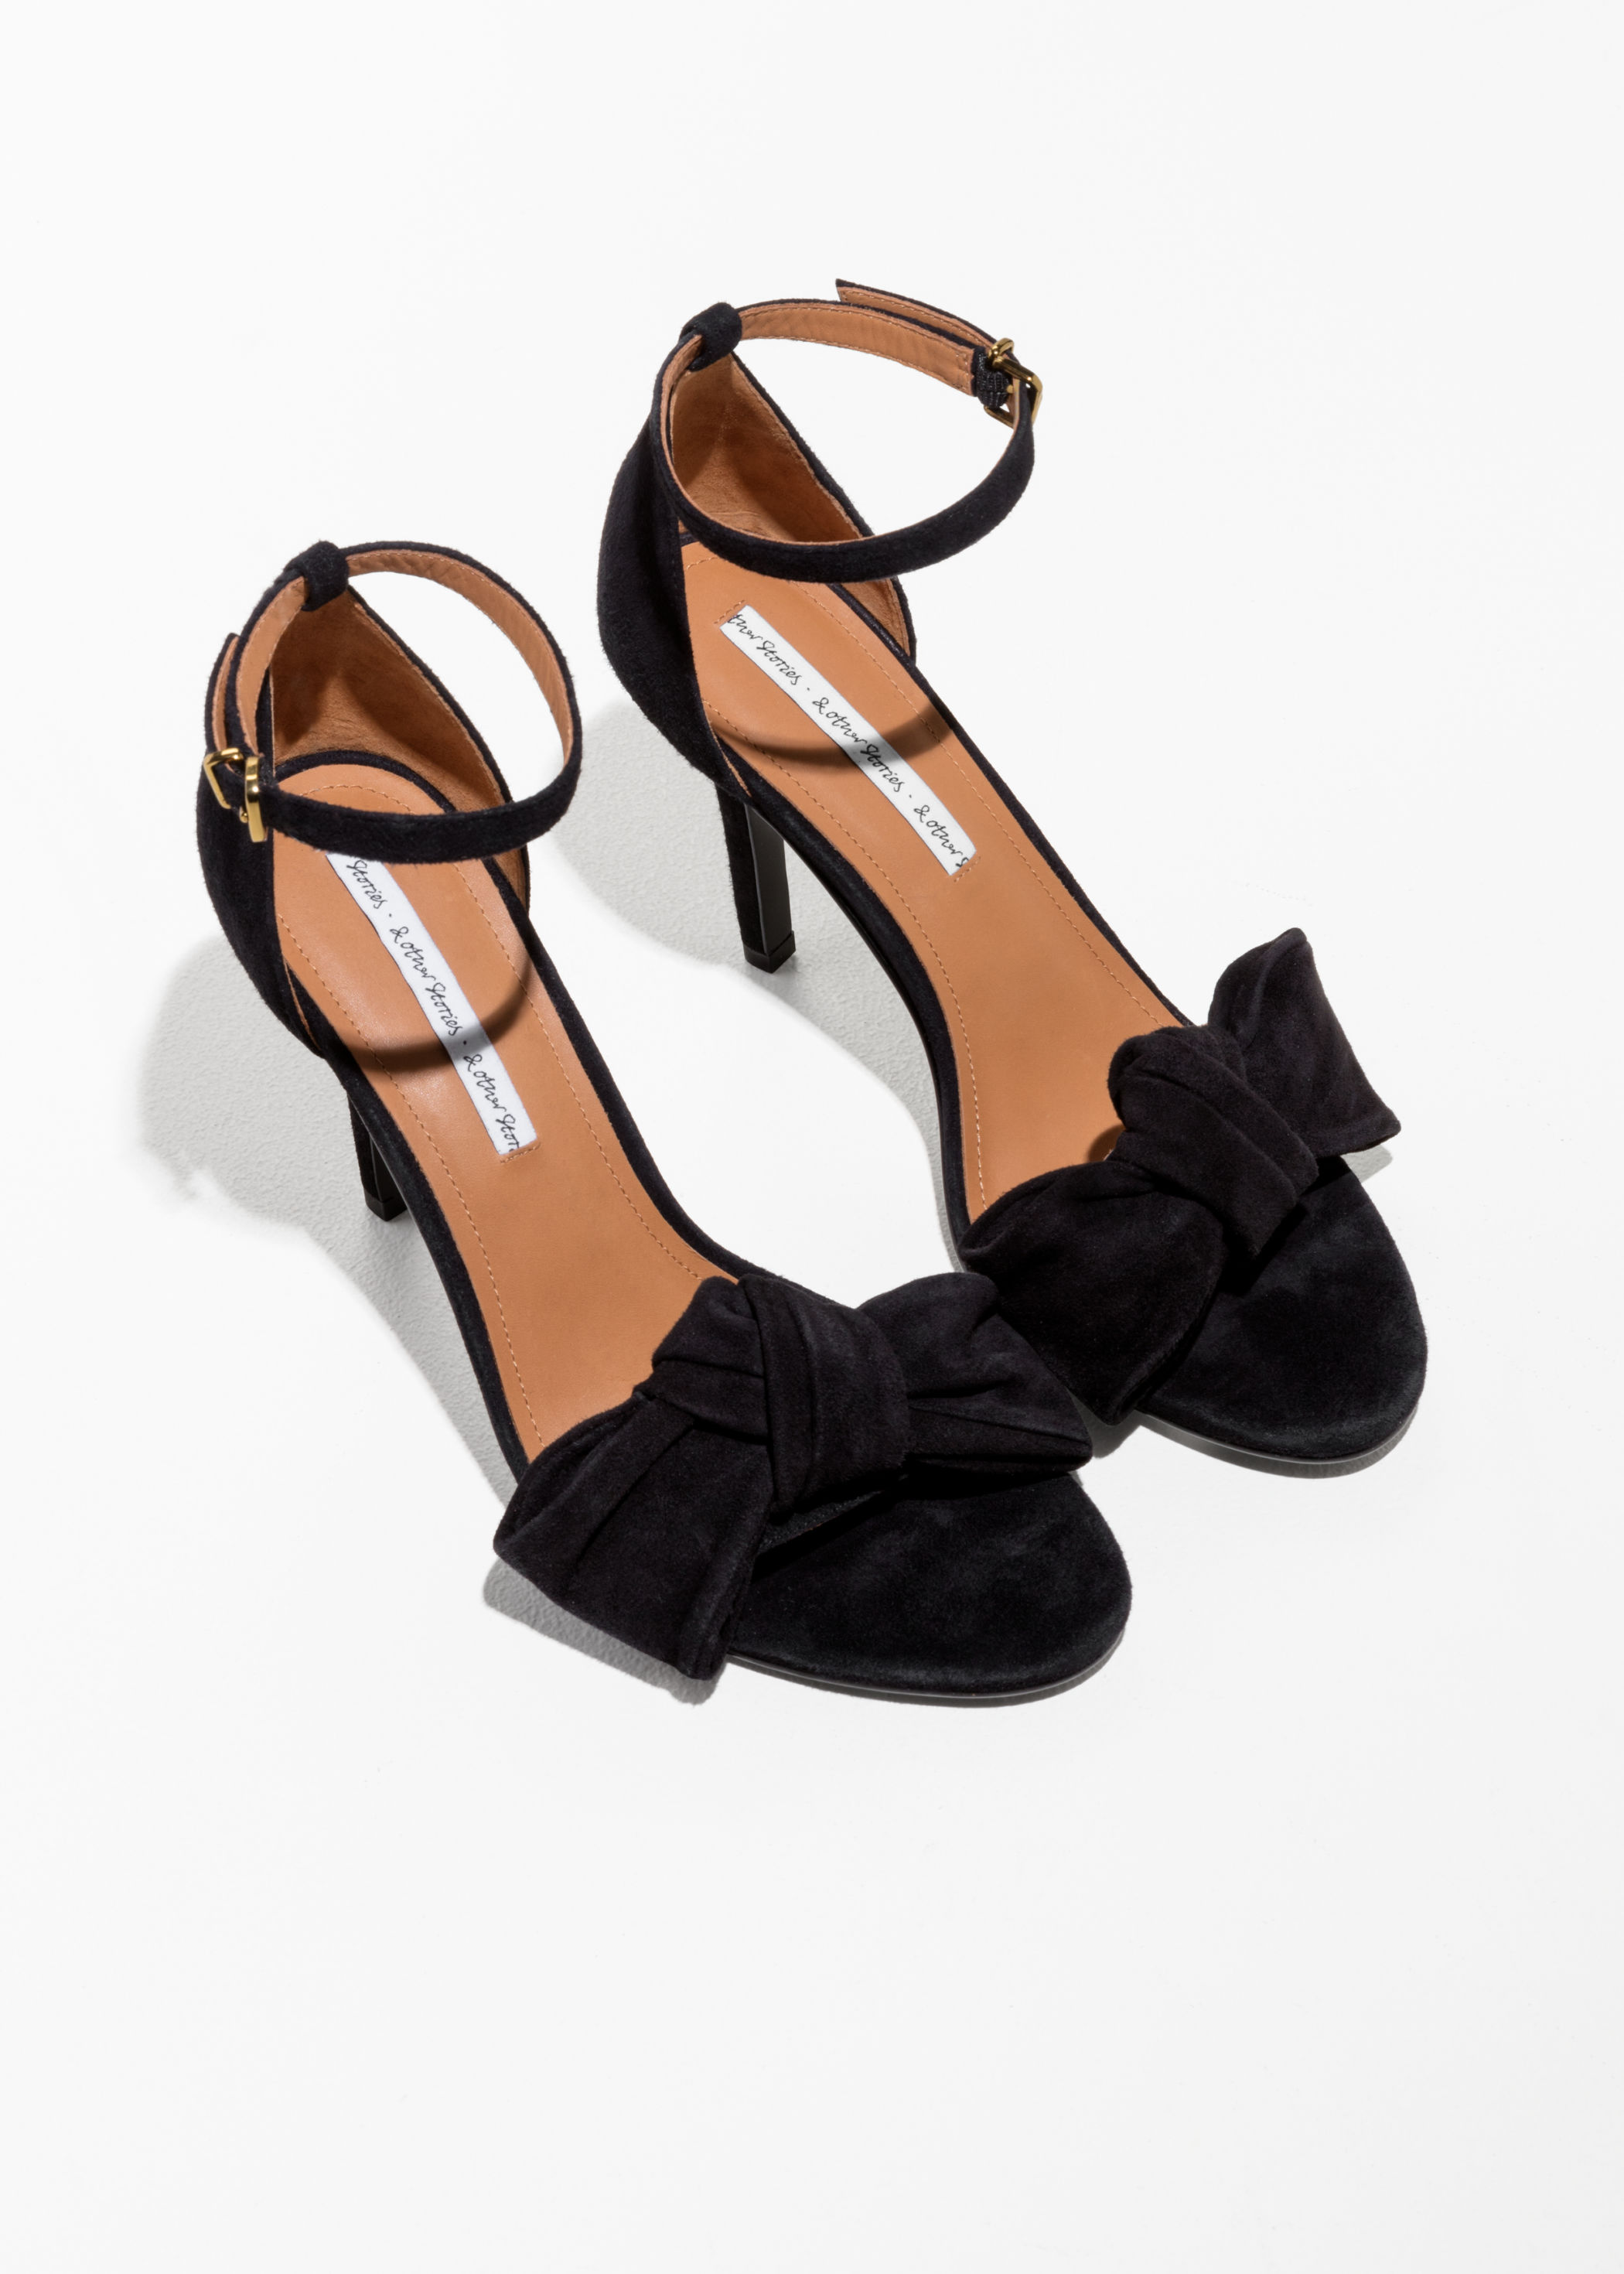 & Other Stories ankle strap ballerinas